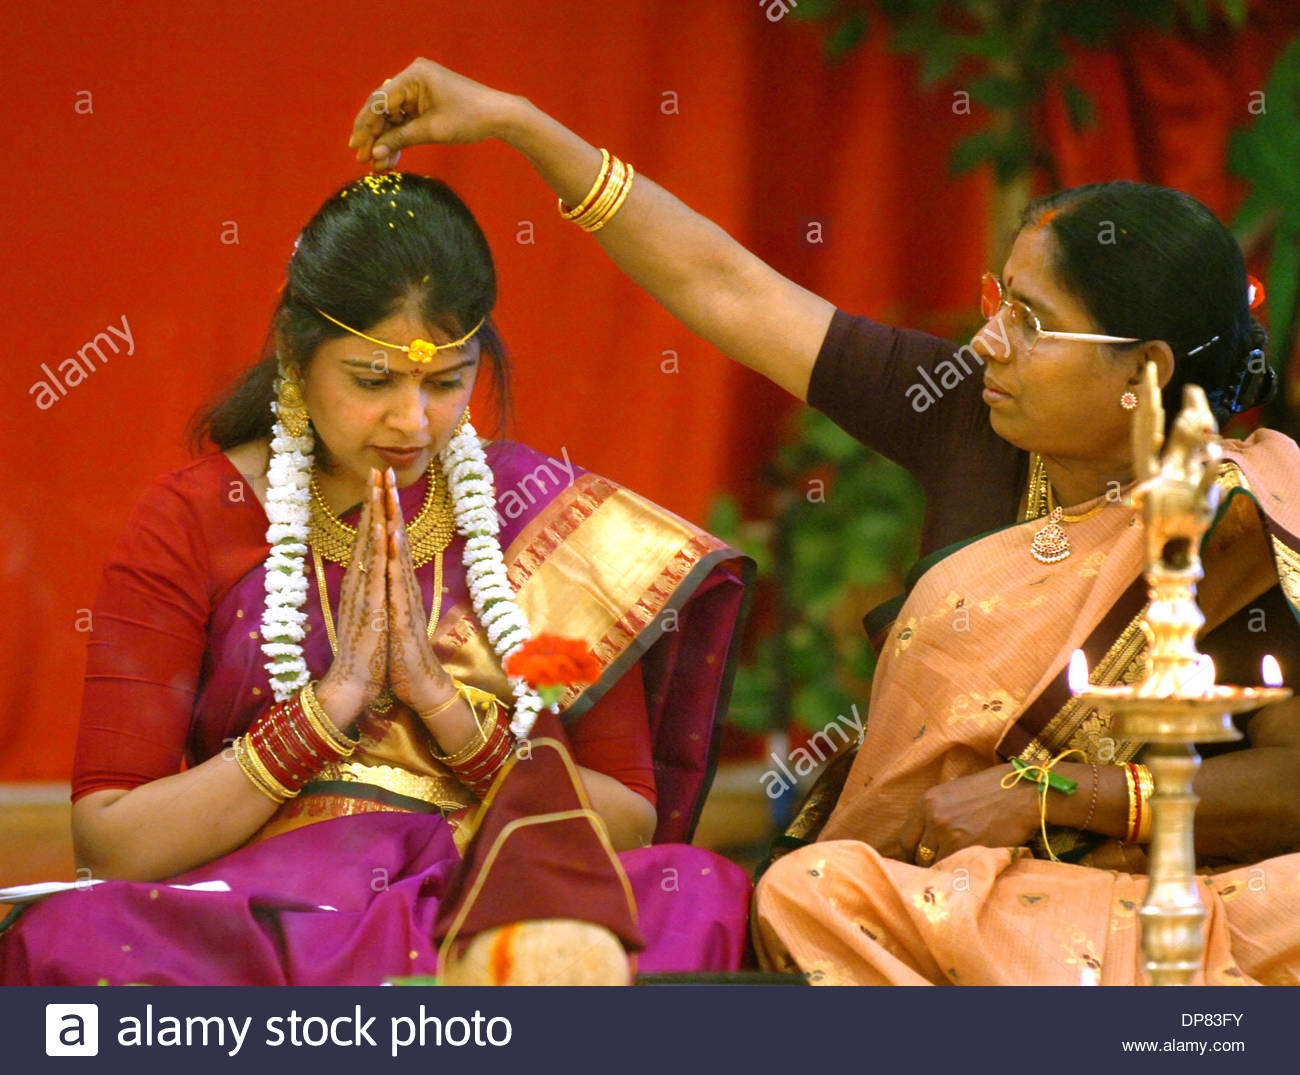 India Brides large network. span are to house matrimonial Matchmaking women brides provide.